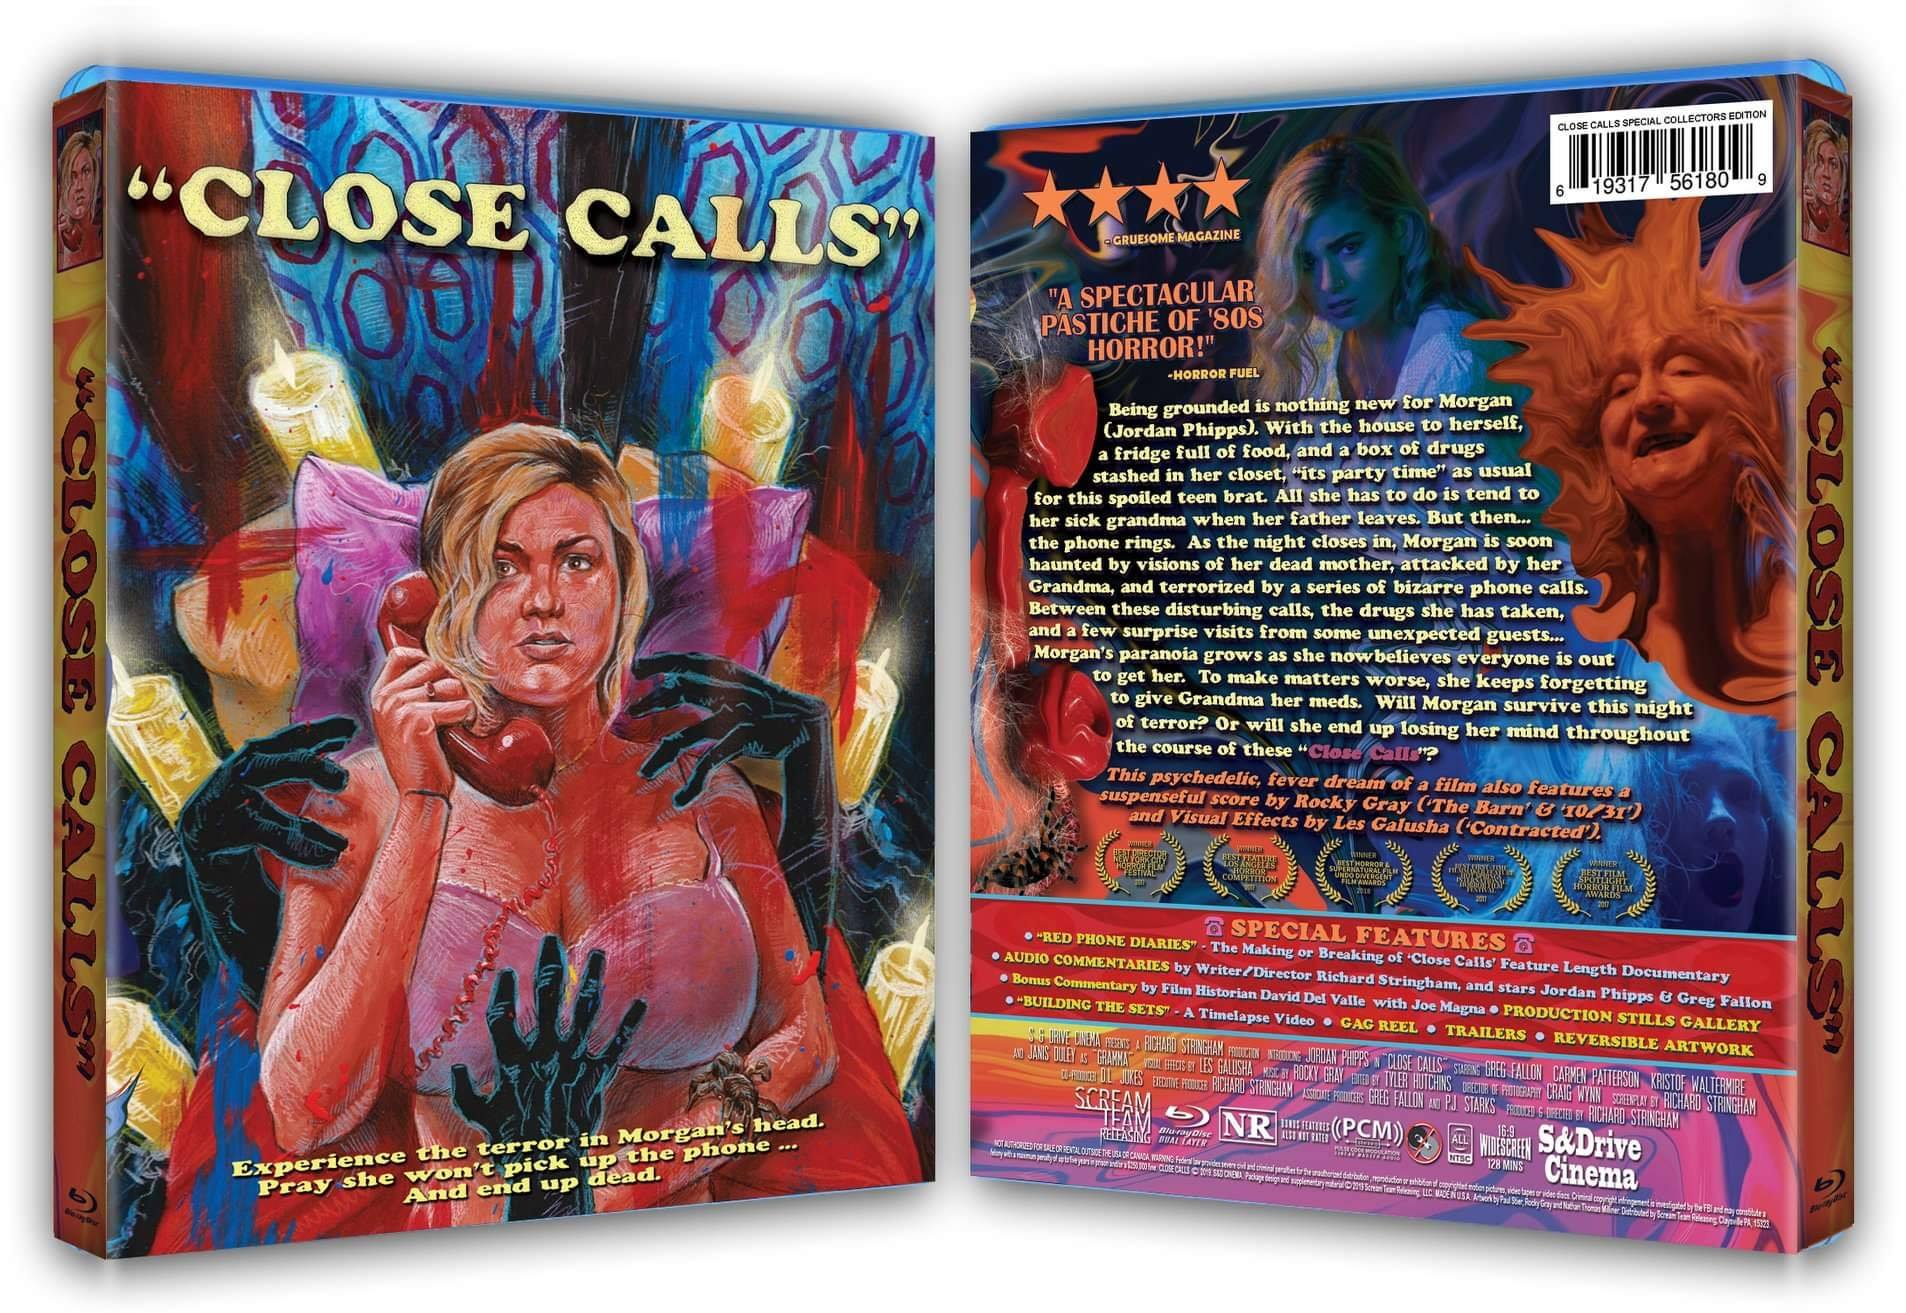 Close Calls Special Collectors Edition.jpg